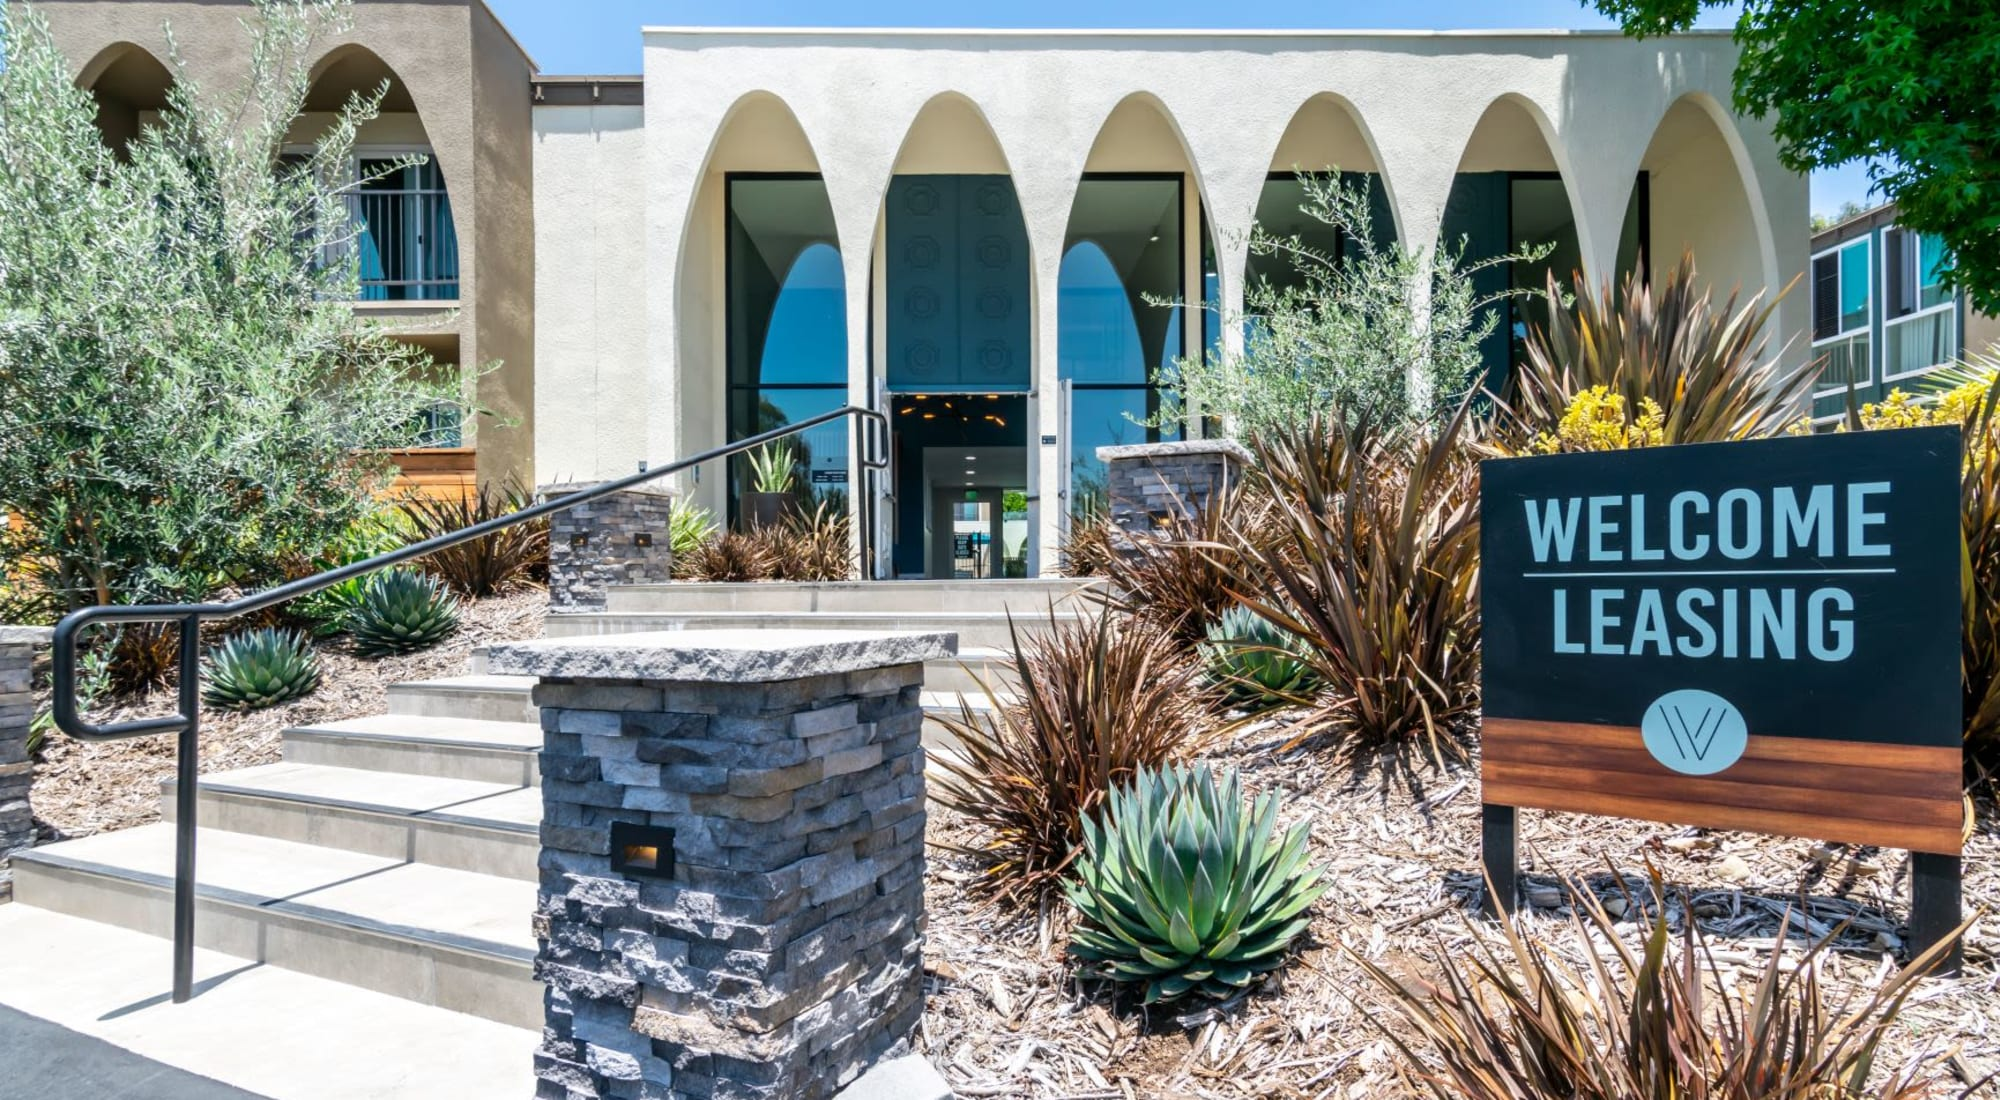 Resident portal for Veranda La Mesa in La Mesa, California